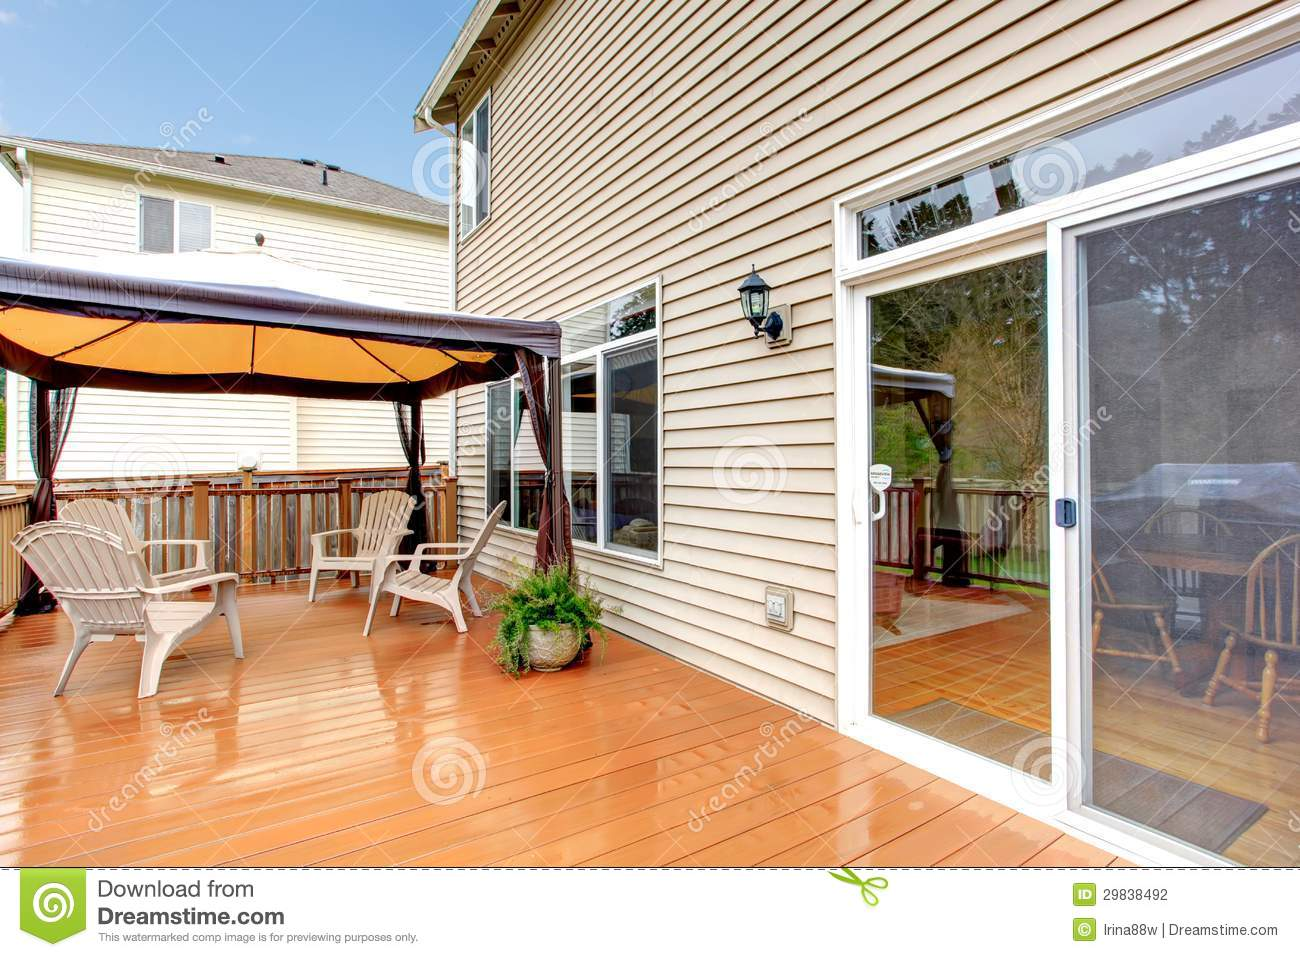 House Back Porch With Umbrella And Chairs During Rain. Stock.